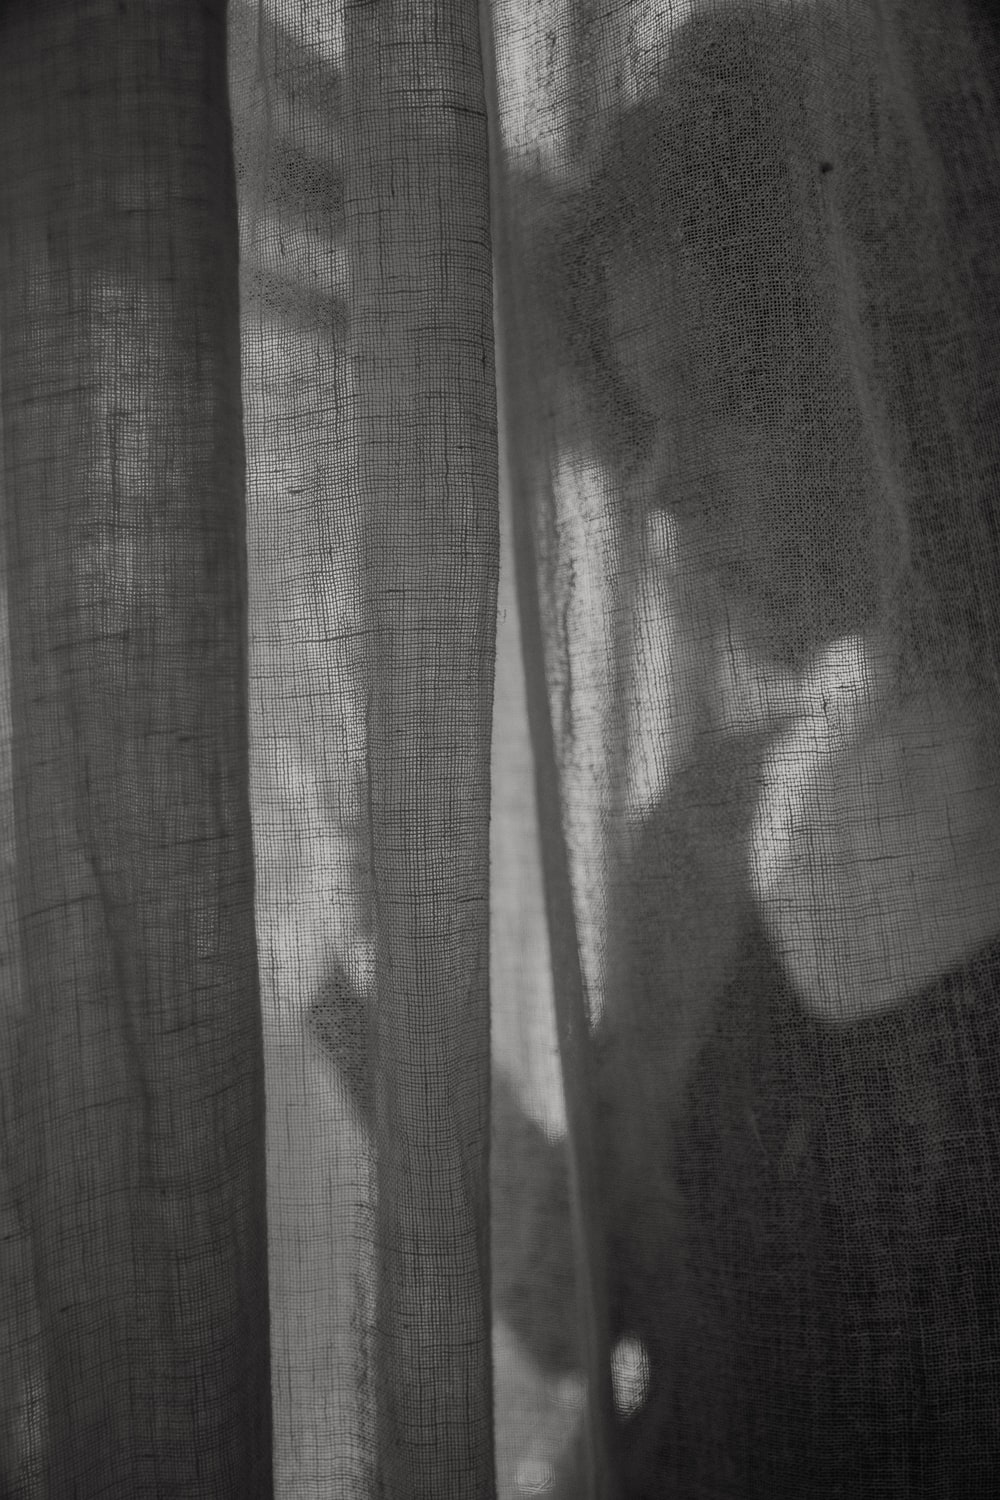 grayscale photo of a person standing in front of a window curtain